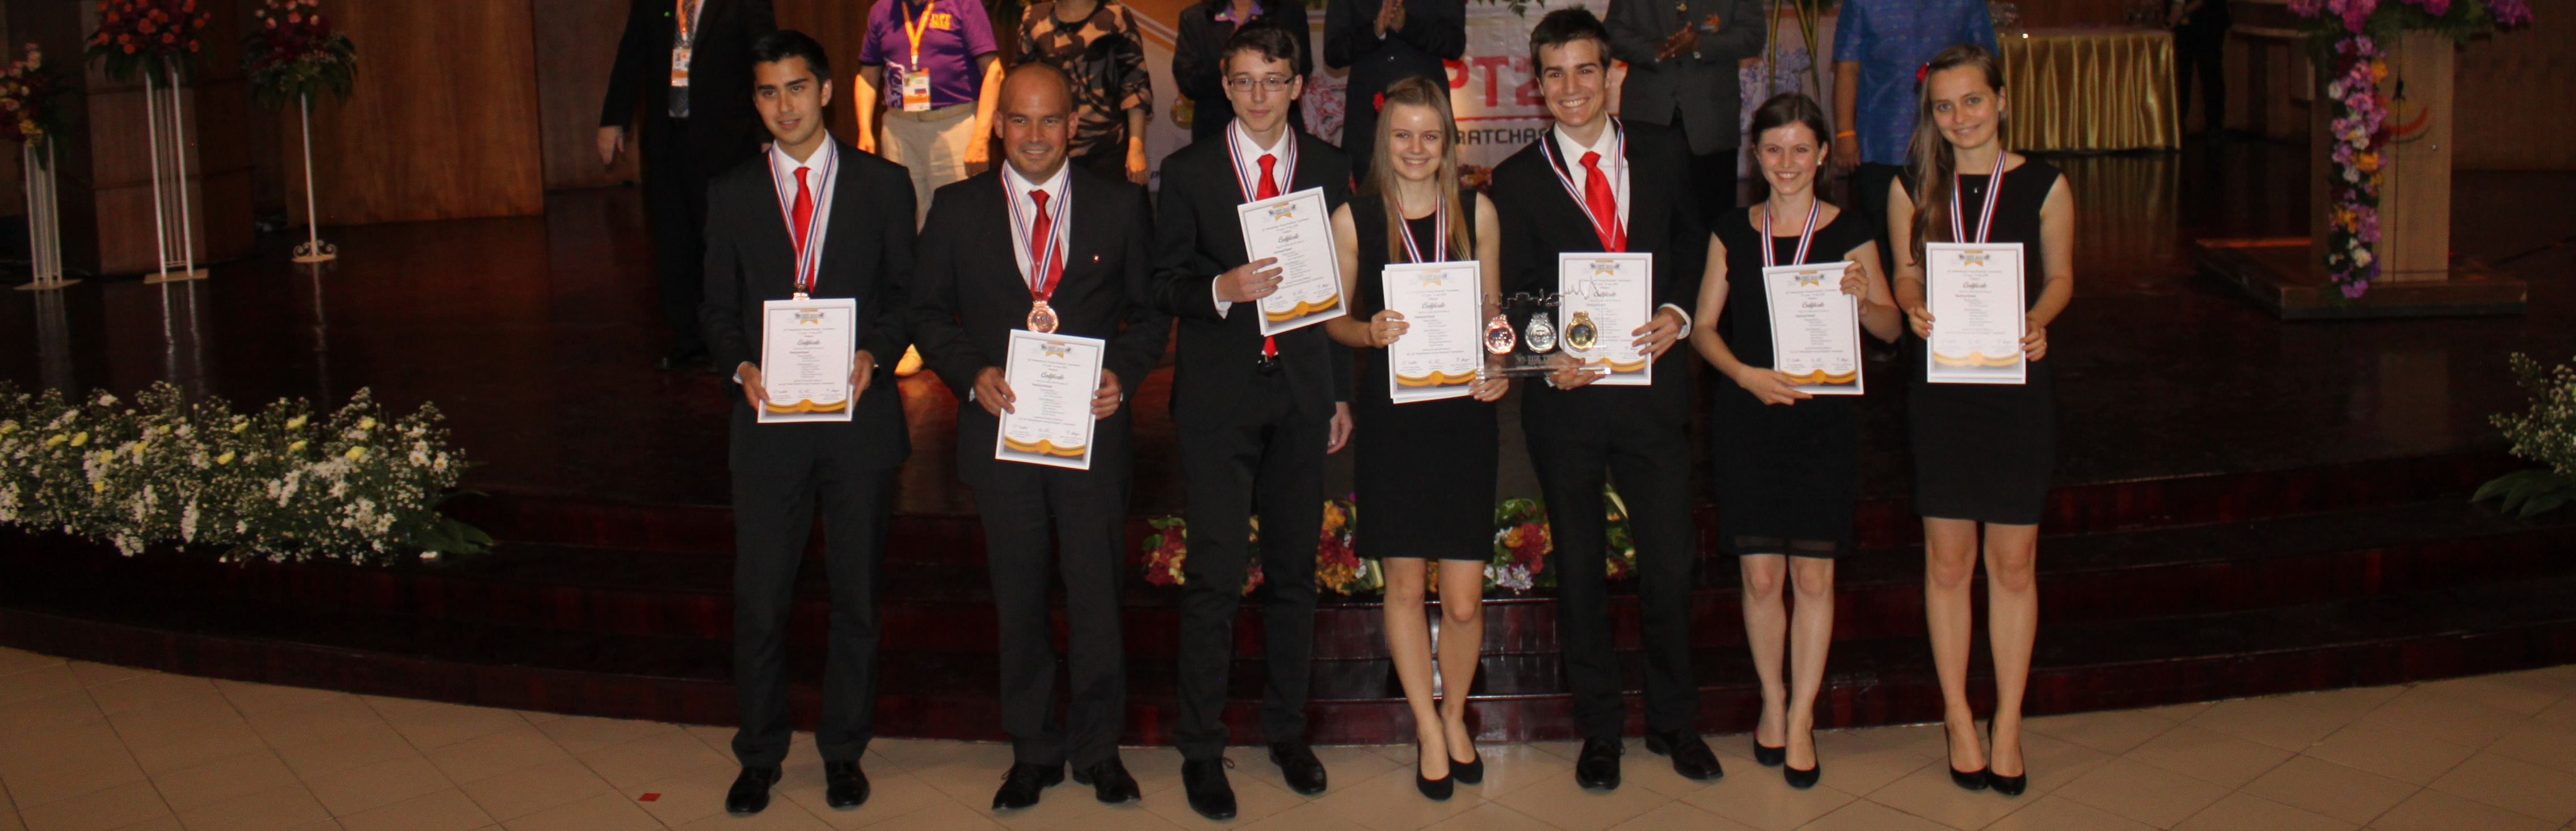 IYPT 2015 - Award Ceremony